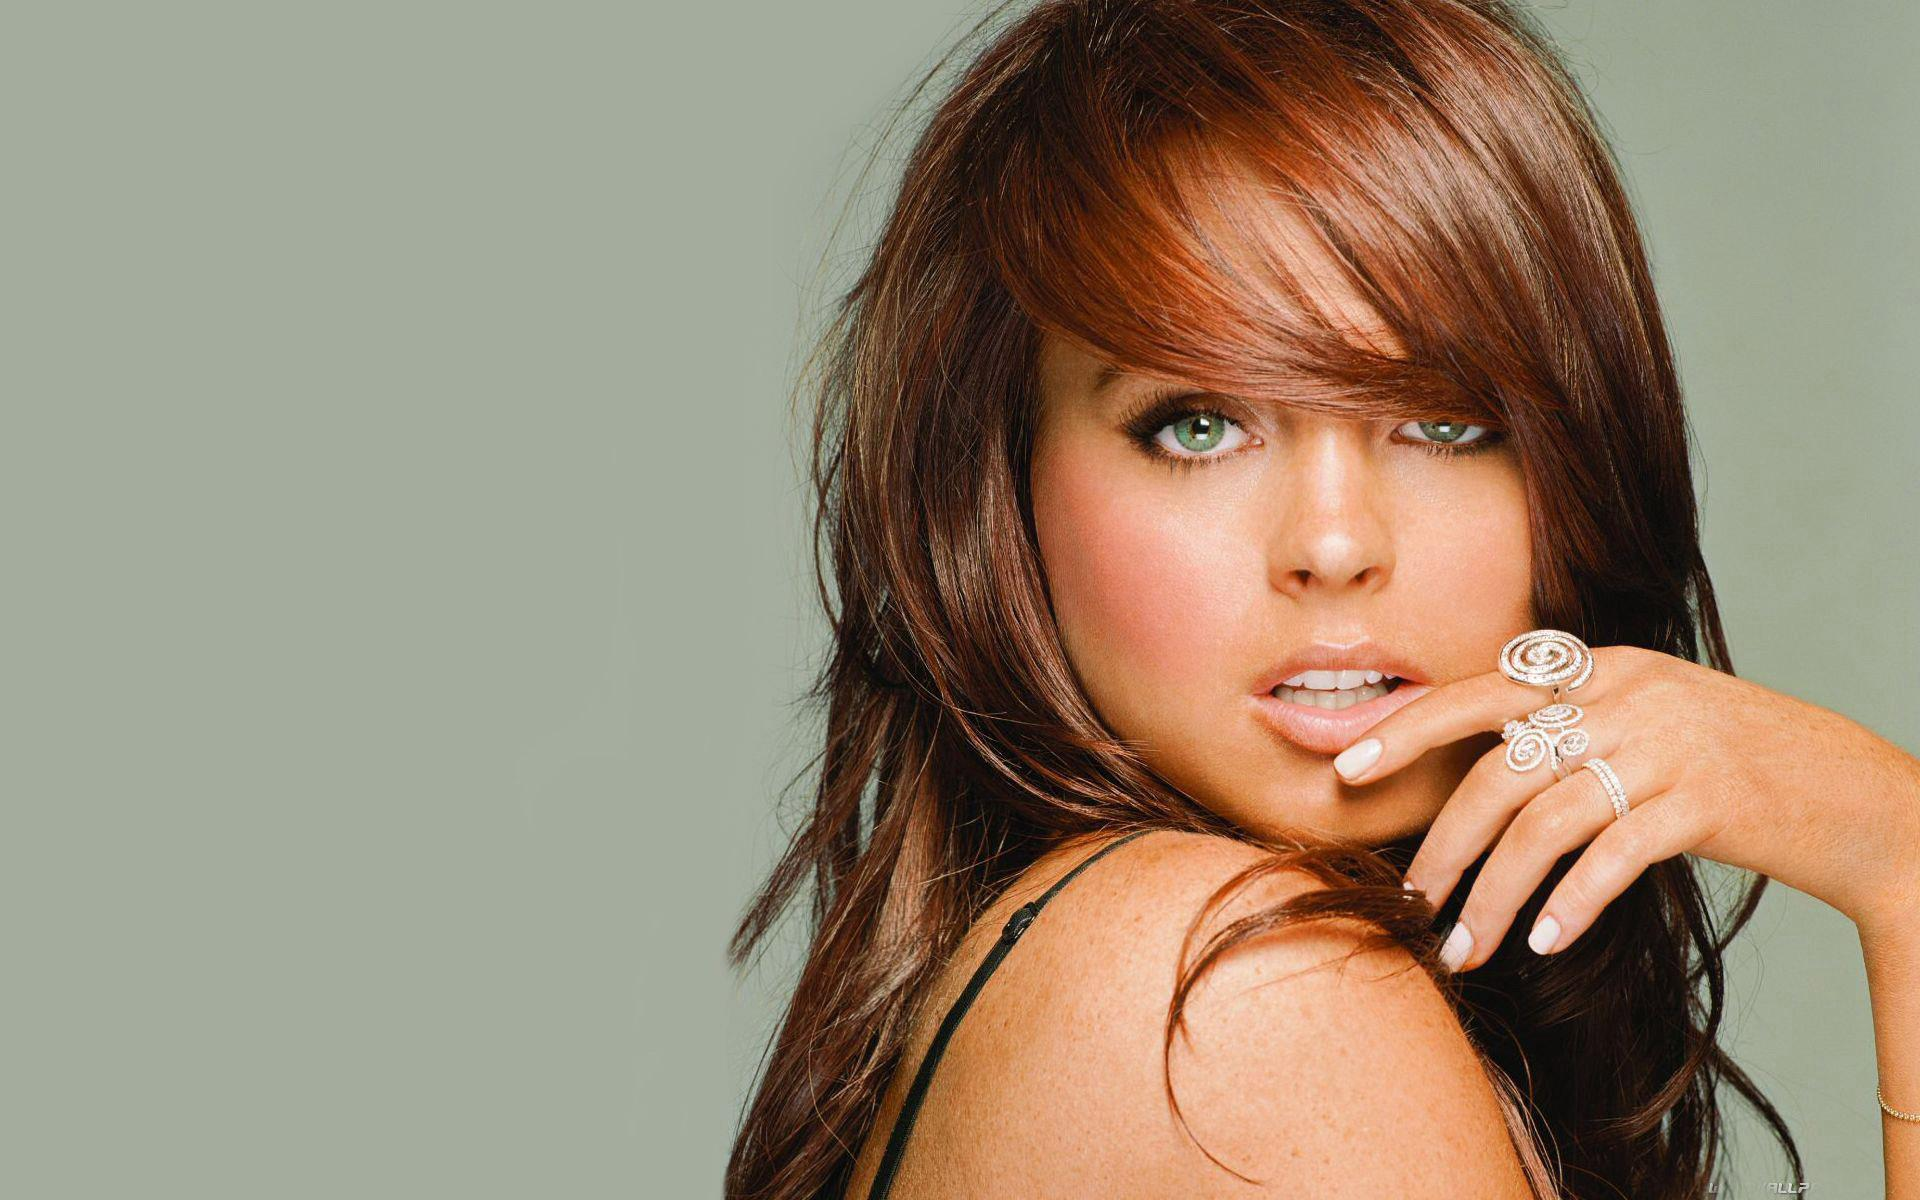 lindsay lohan wallpapers, pictures, images